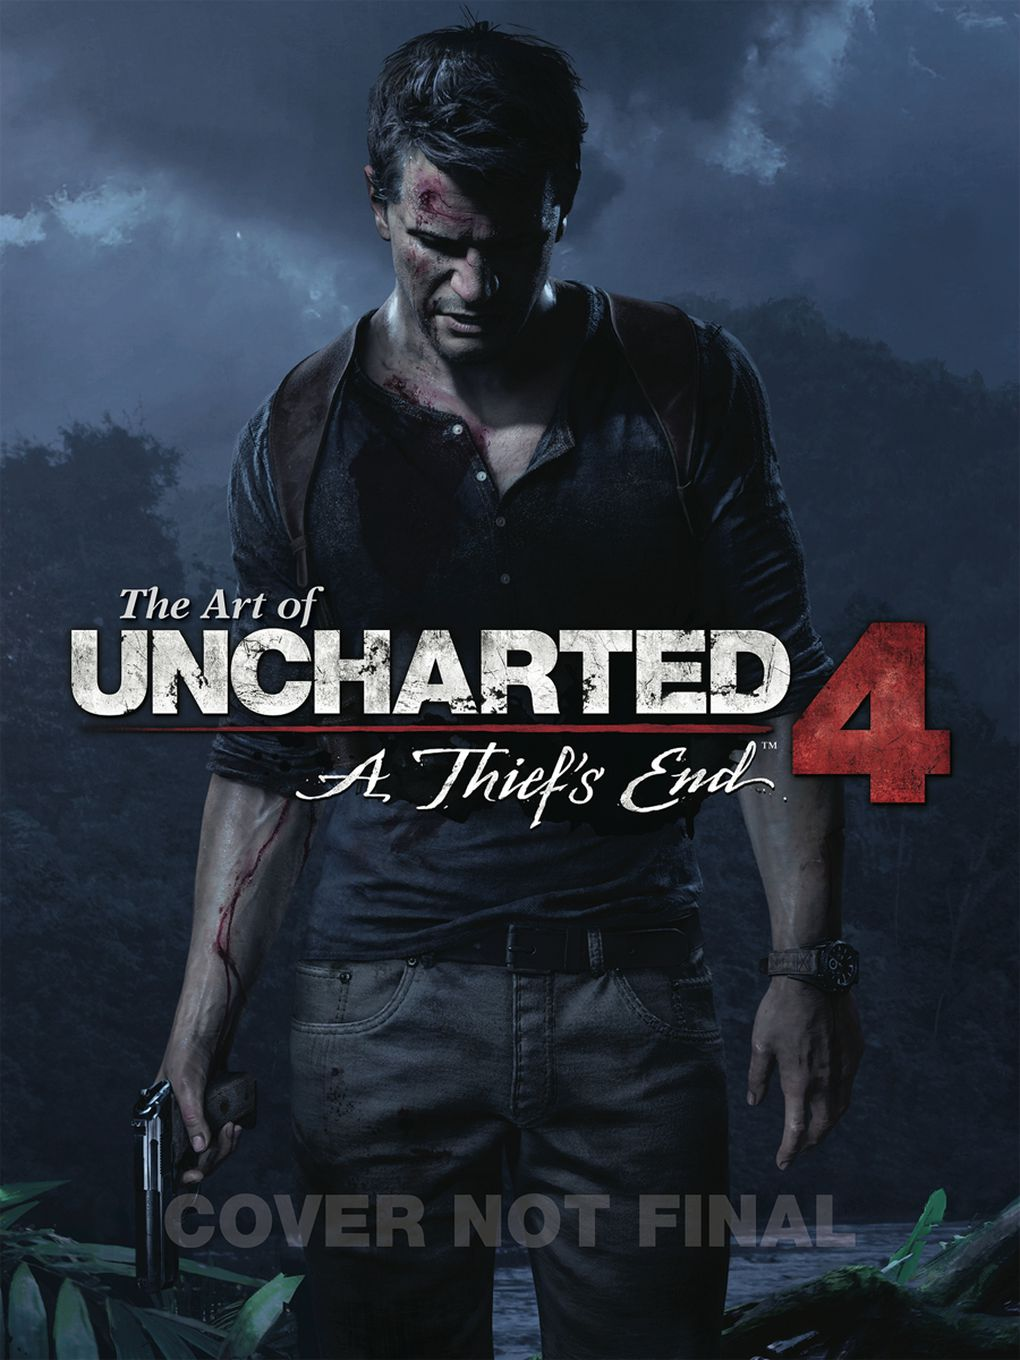 The Art of Uncharted 4: A Thief's End | Polygon